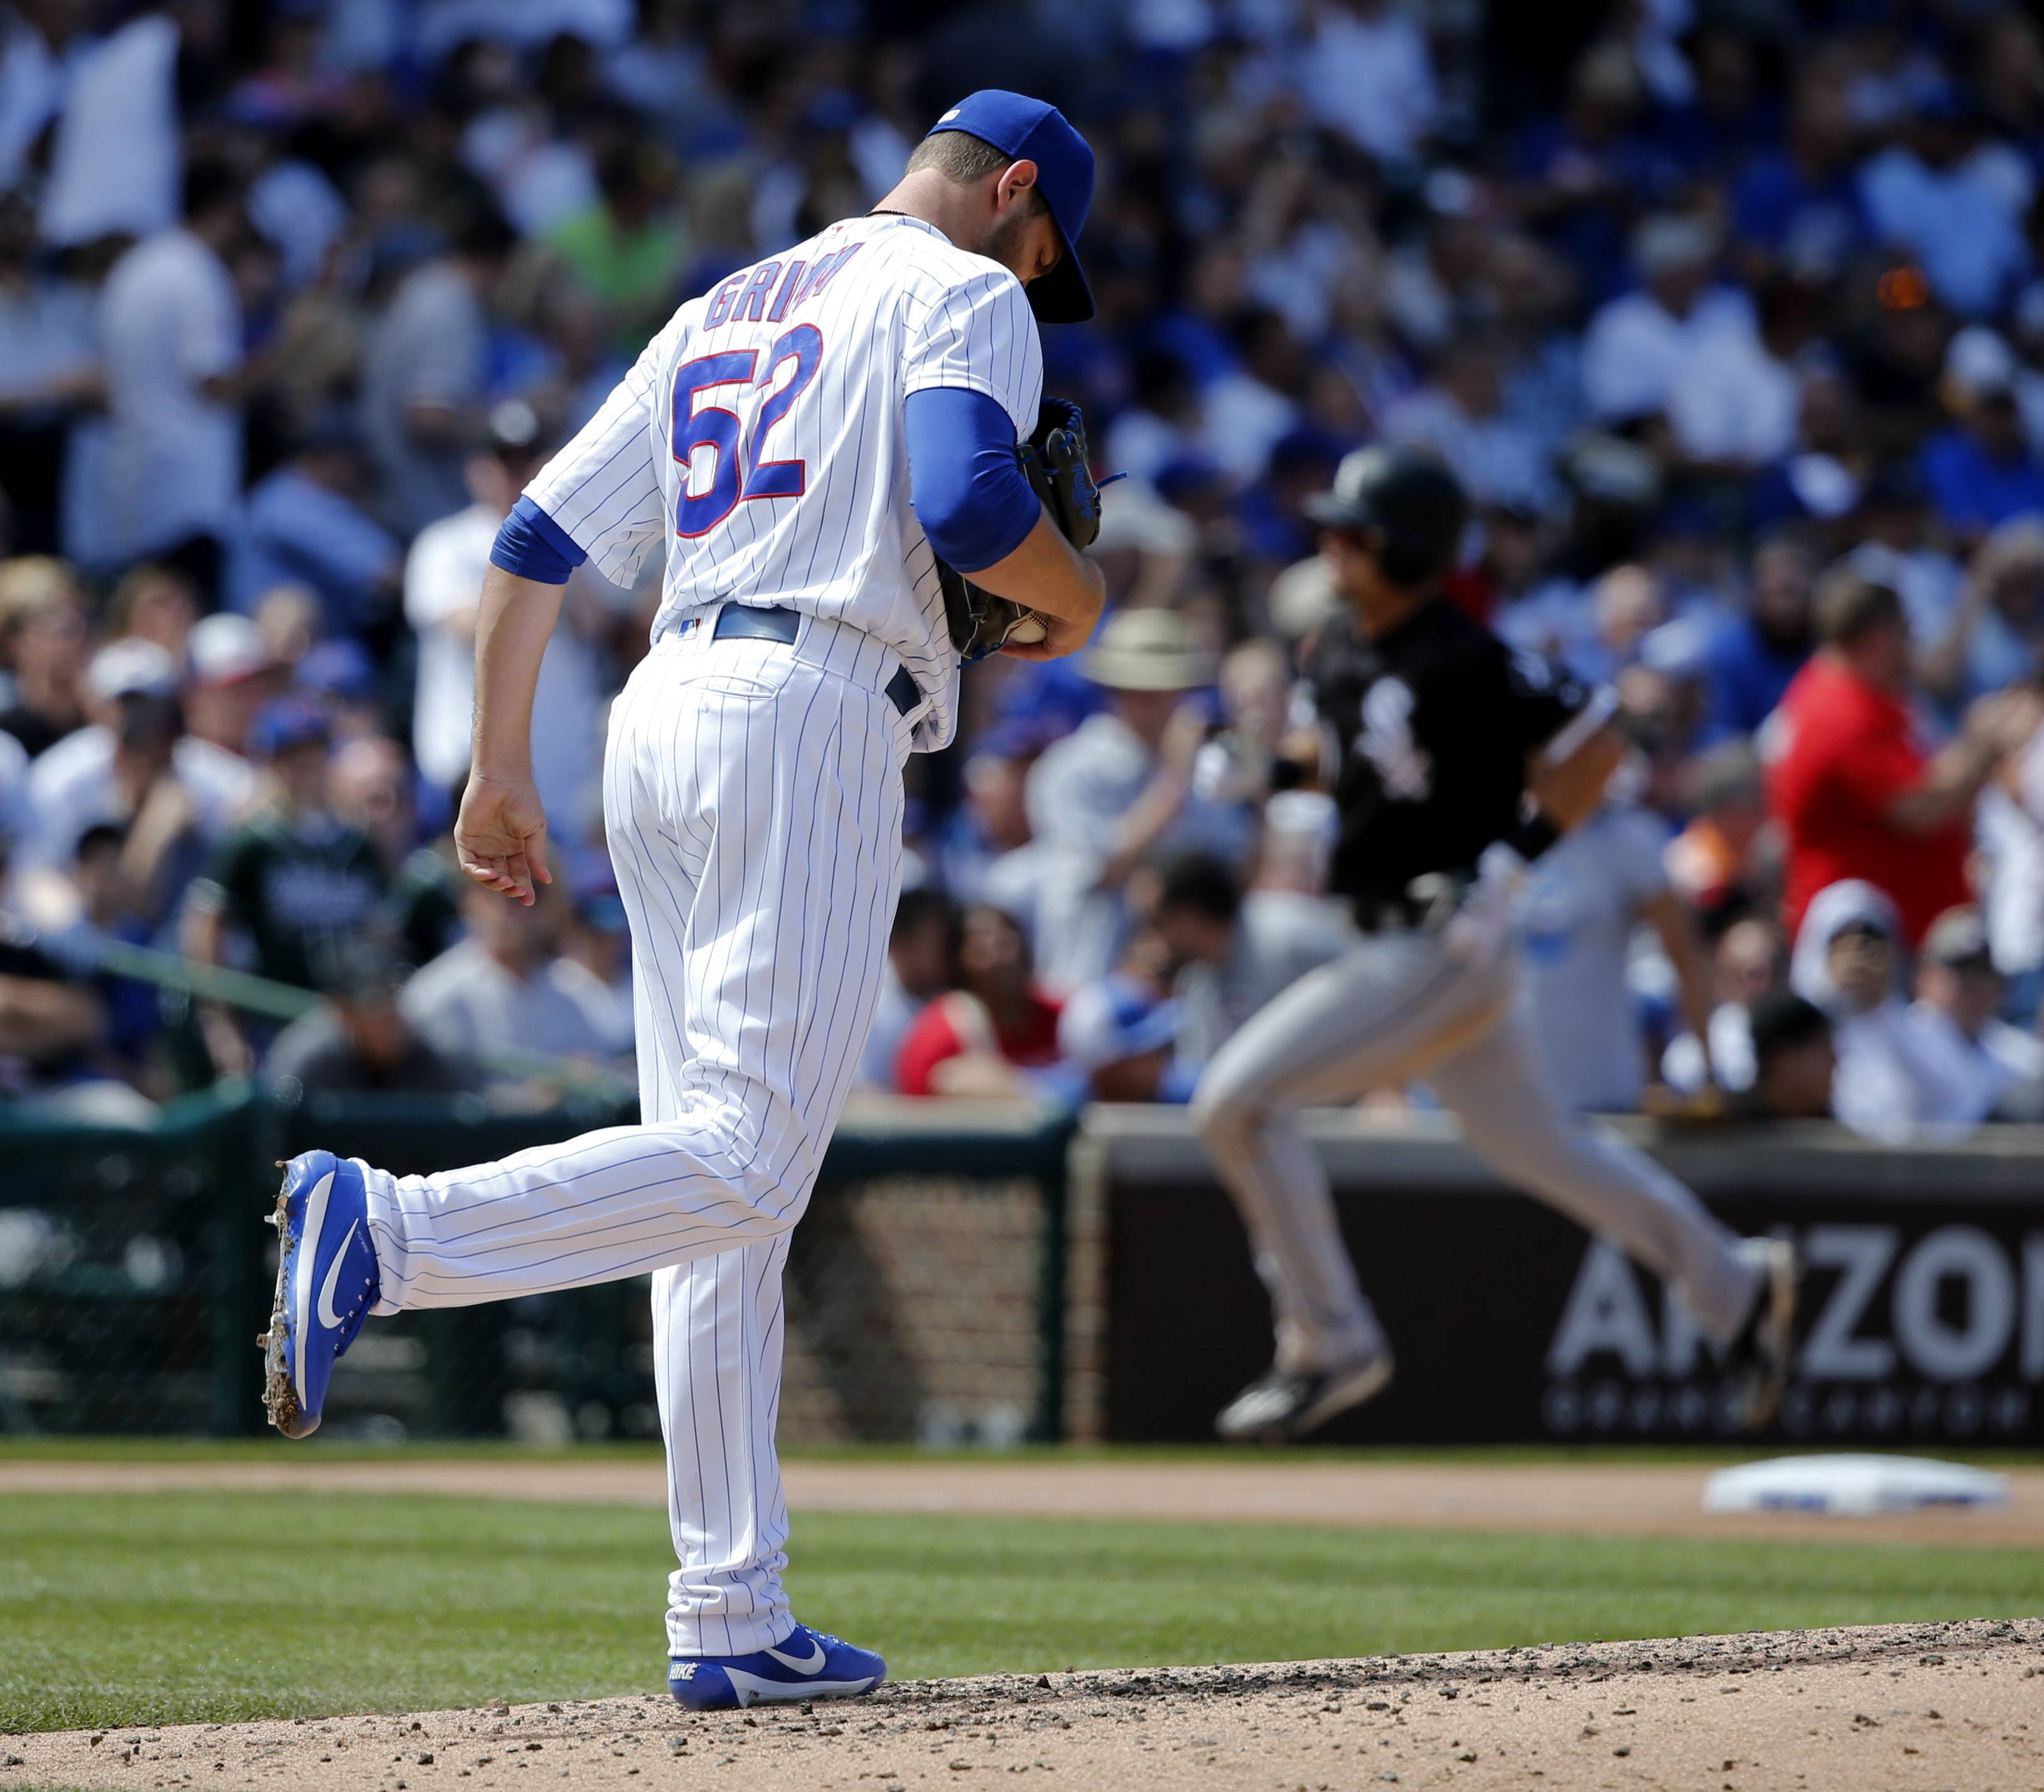 Chicago Cubs relief pitcher Justin Grimm returns to the mound after giving up a home run to Chicago White Sox's Adam Engel, background right, during the sixth inning of a baseball game Monday, July 24, 2017, in Chicago.